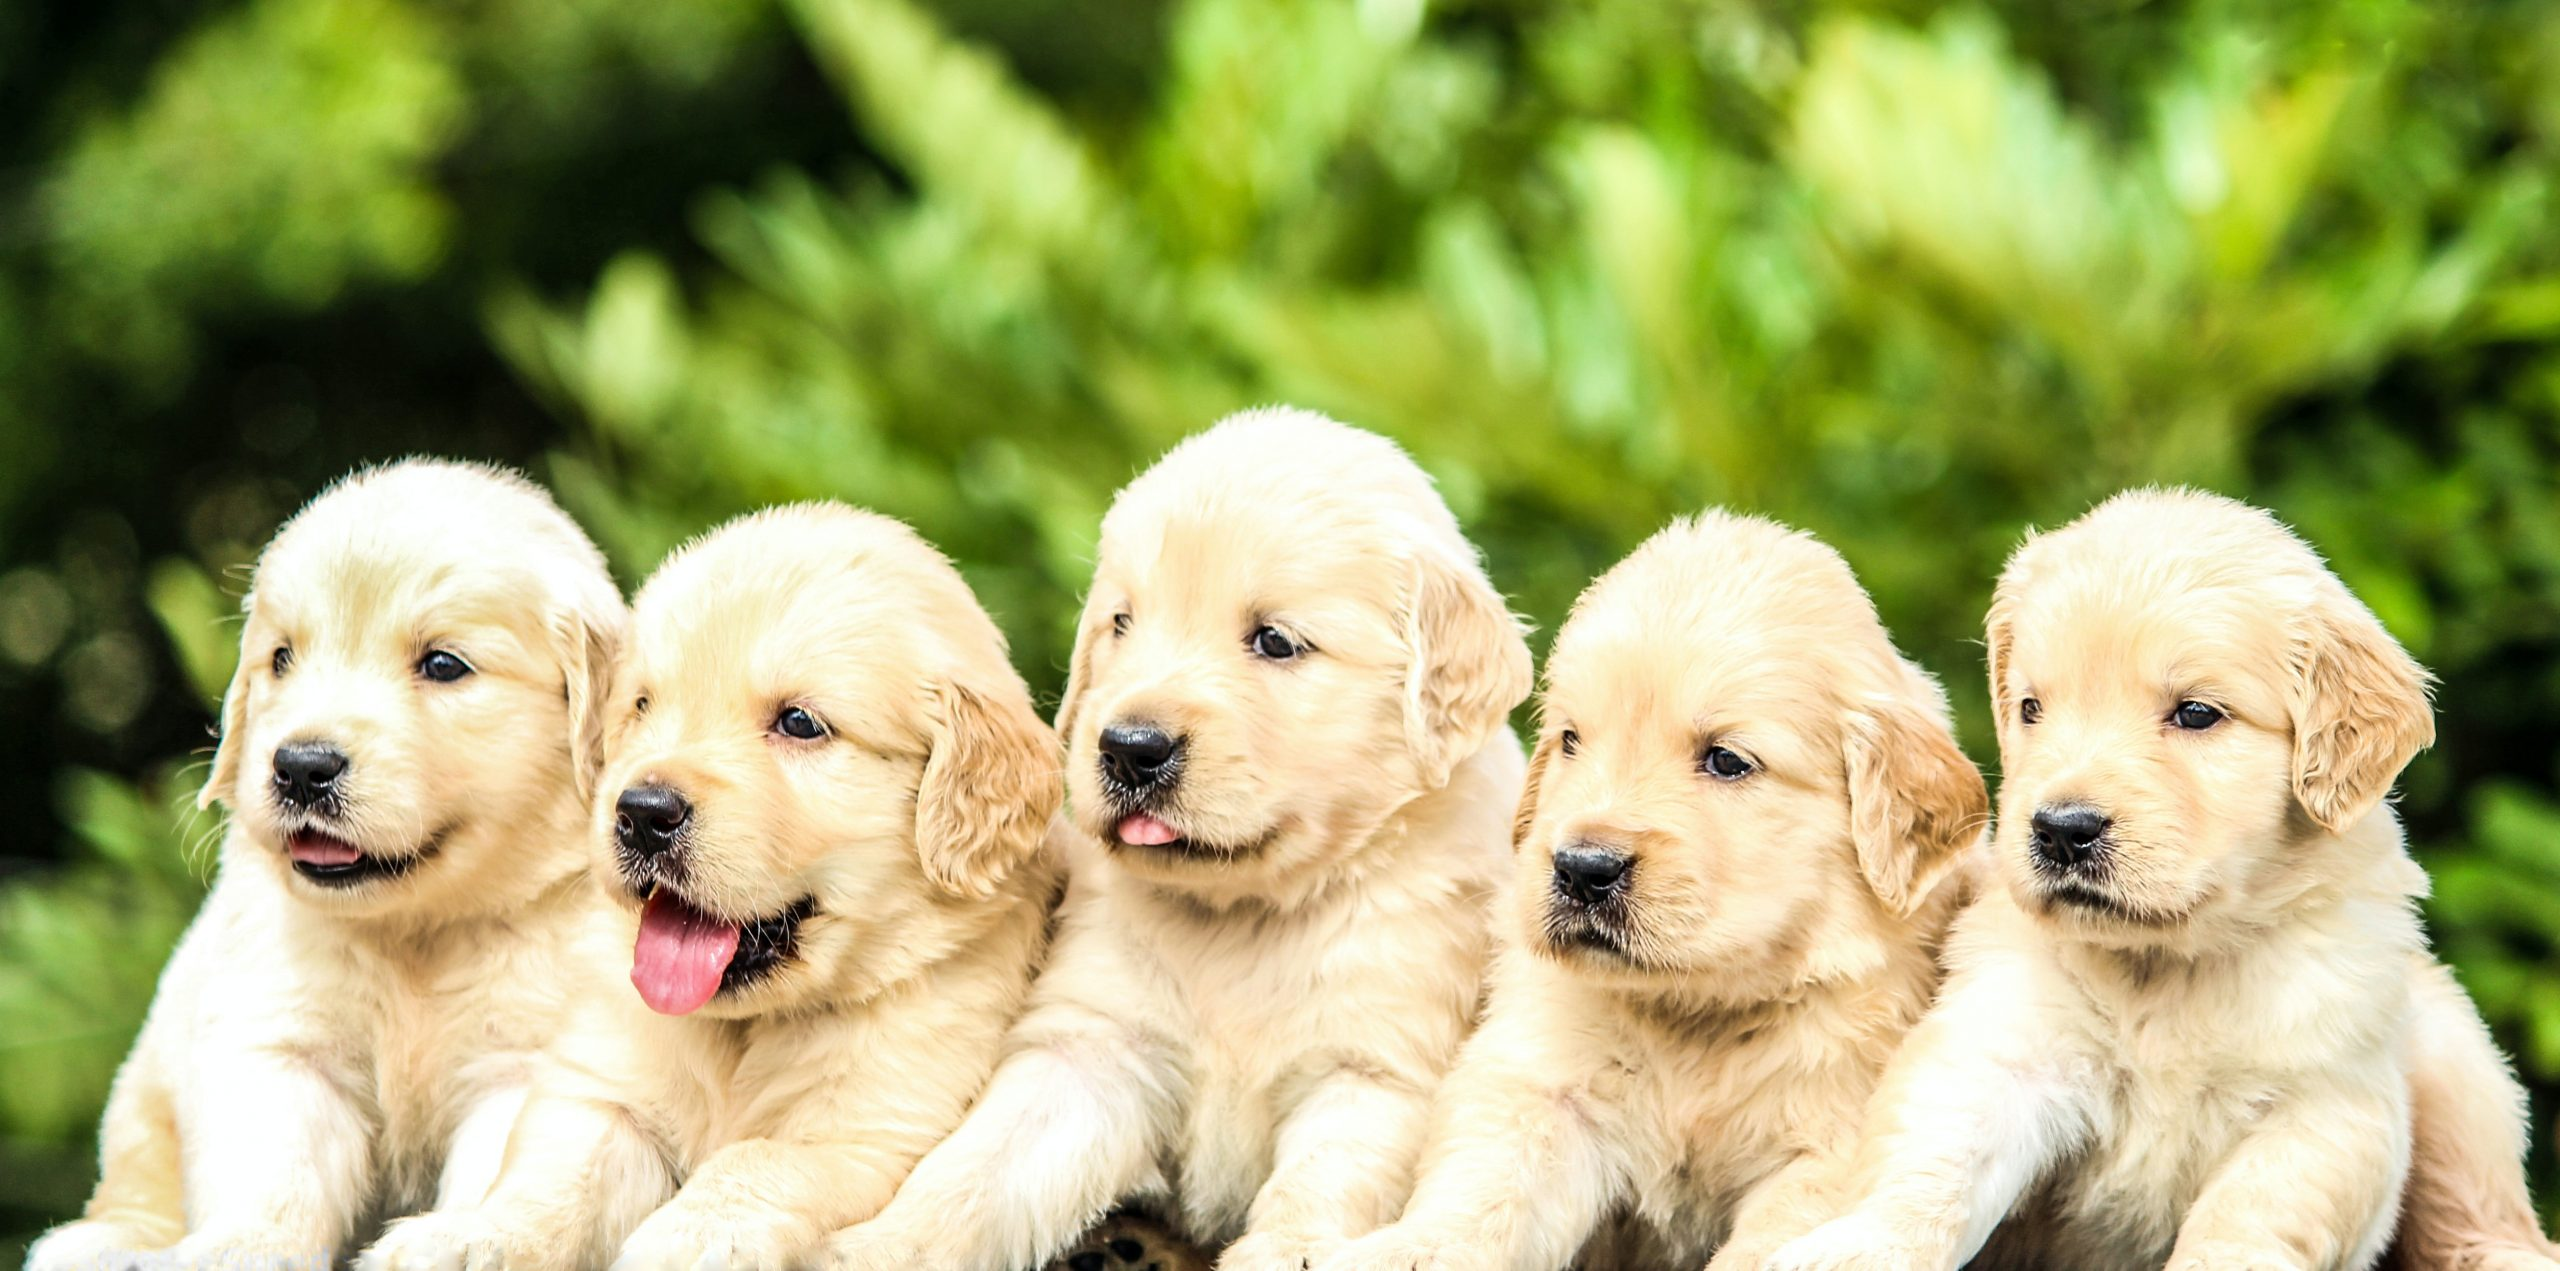 Five Golden Retriever Puppies was enough cuteness for the day